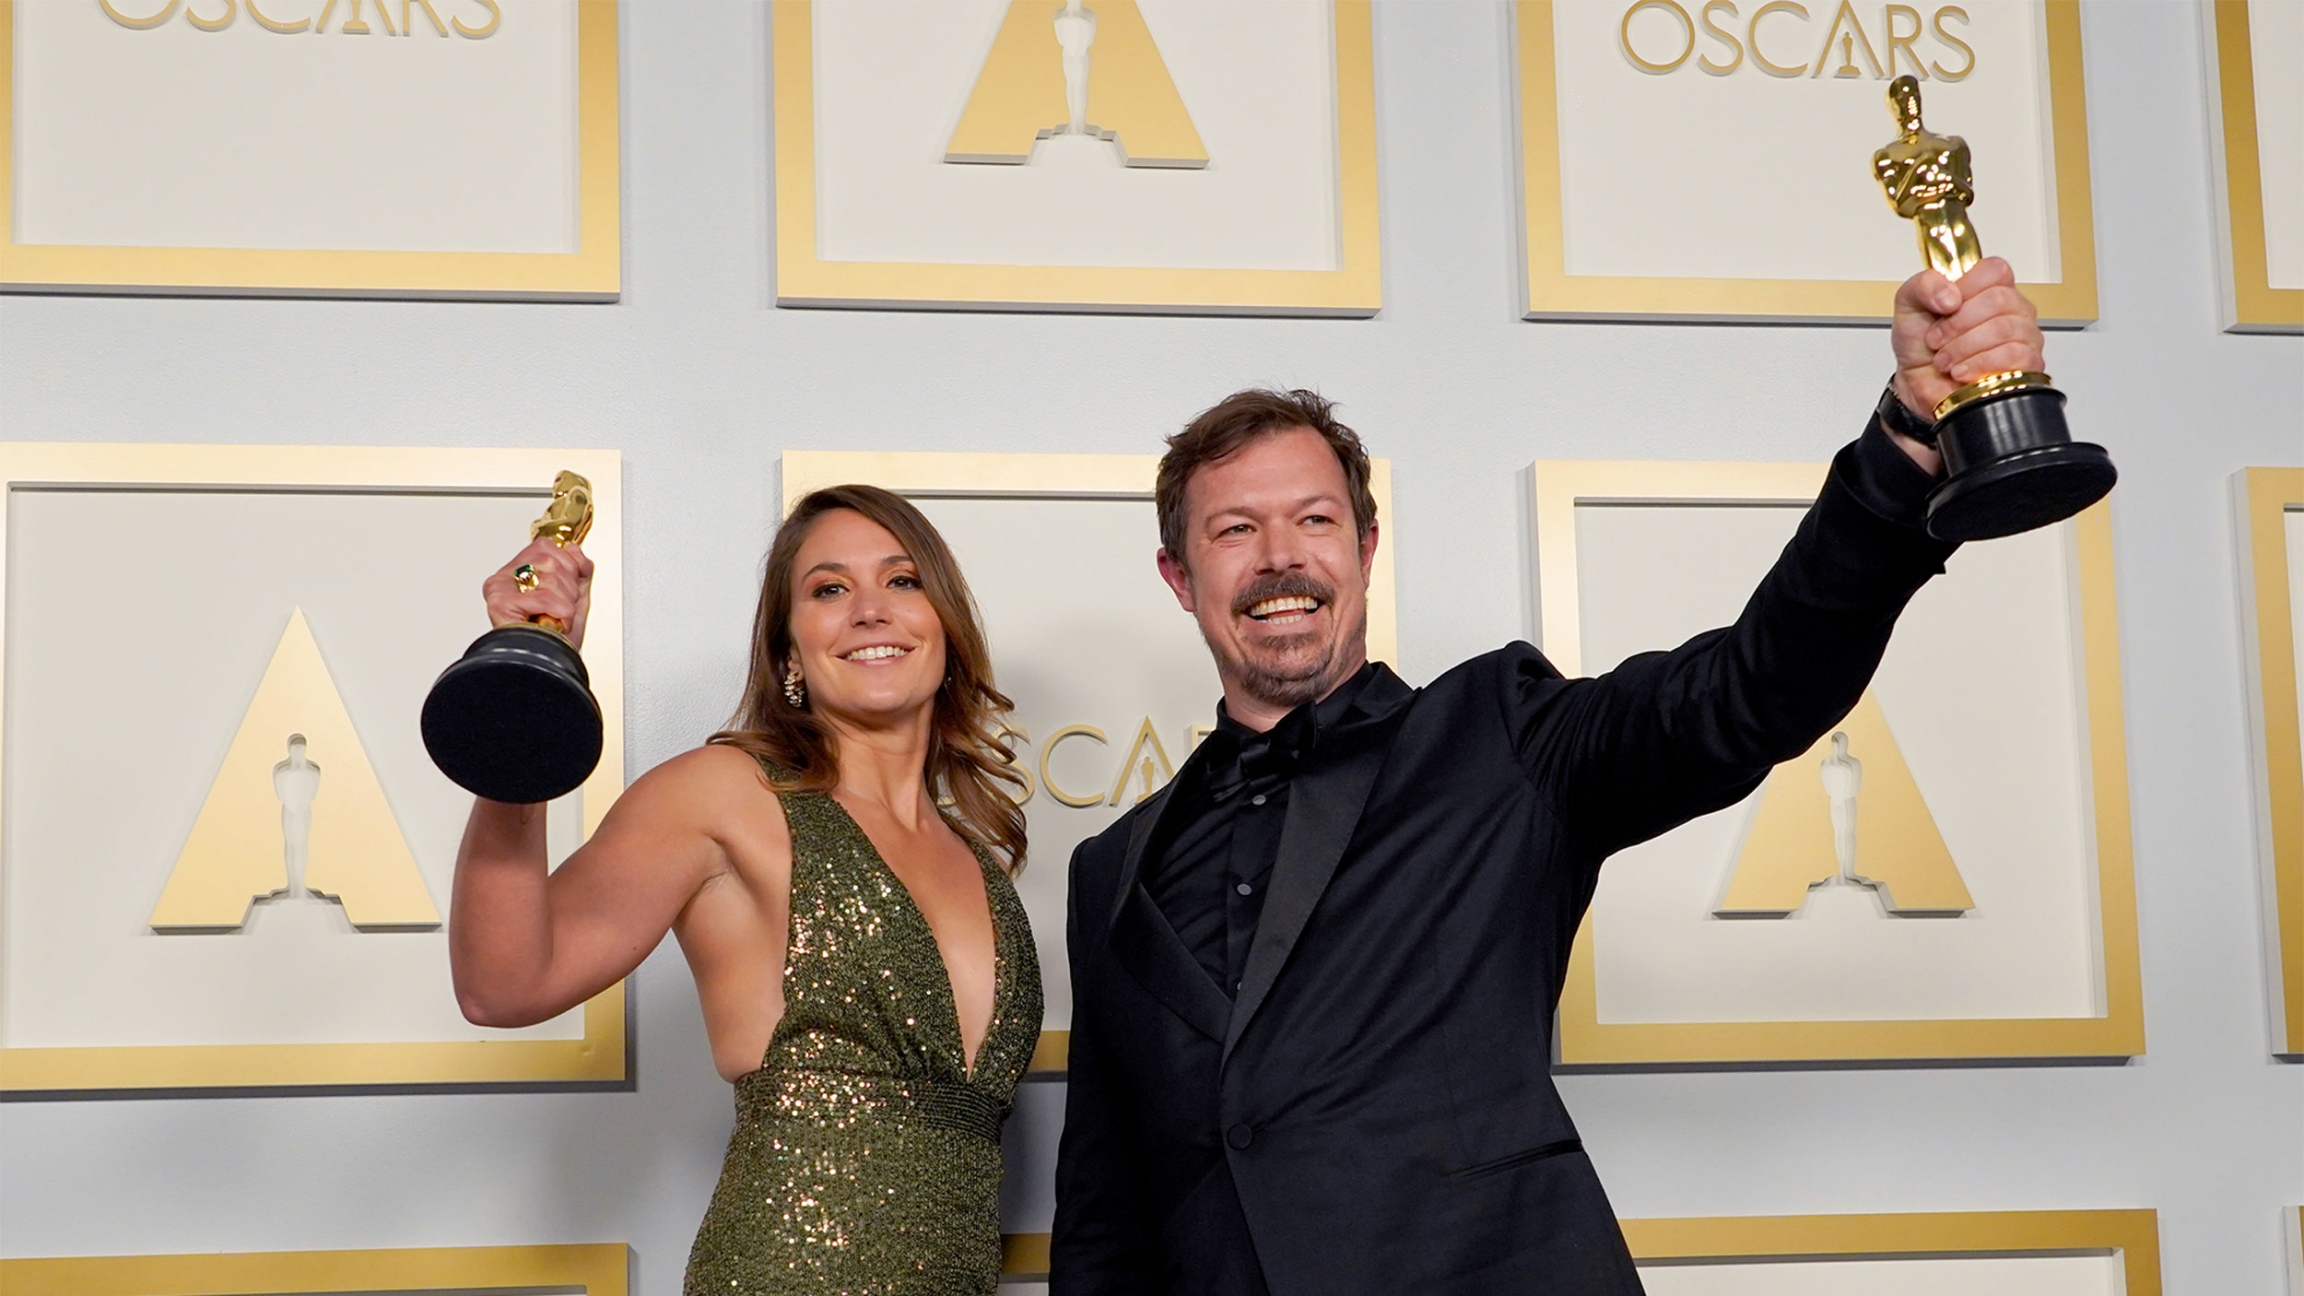 Woman in green dress and man in black suit hold up Oscars